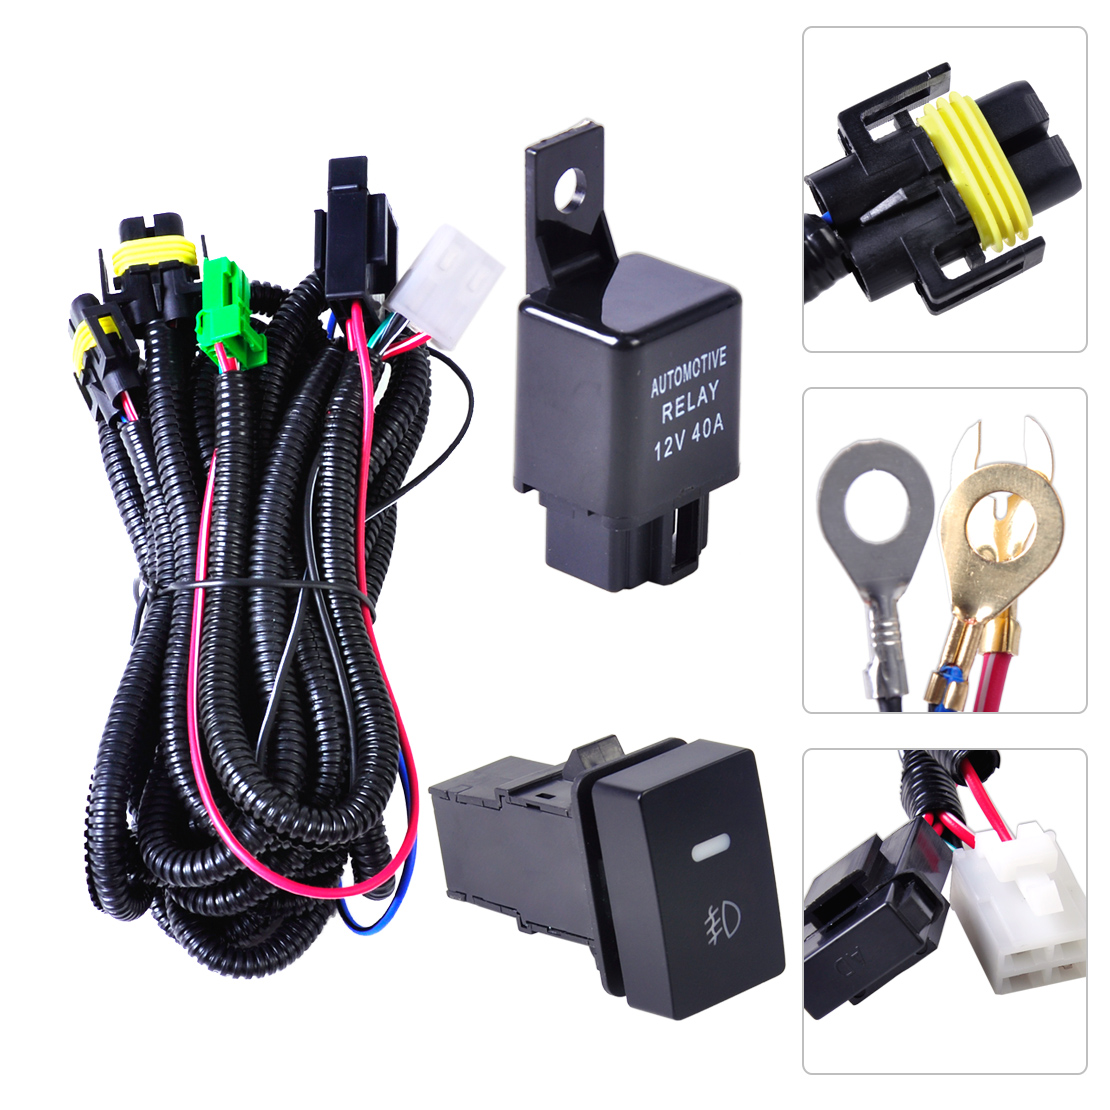 Citall H11 Fog Light Lamp Wiring Harness Sockets Wire Switch With Vw Subaru Engine Aeproductgetsubject